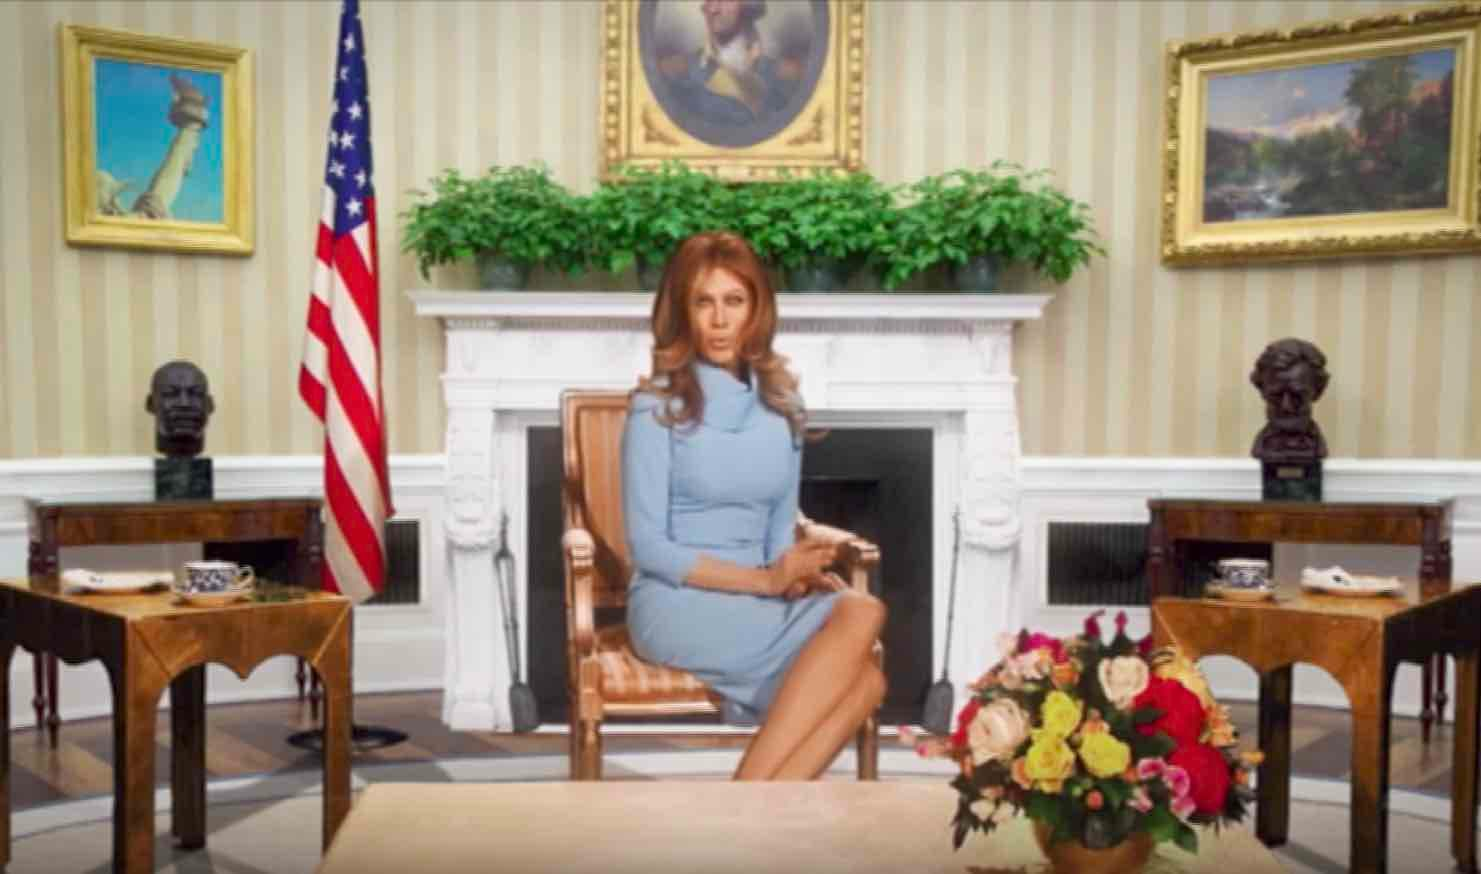 Virginia Raffaele imita Melania Trump